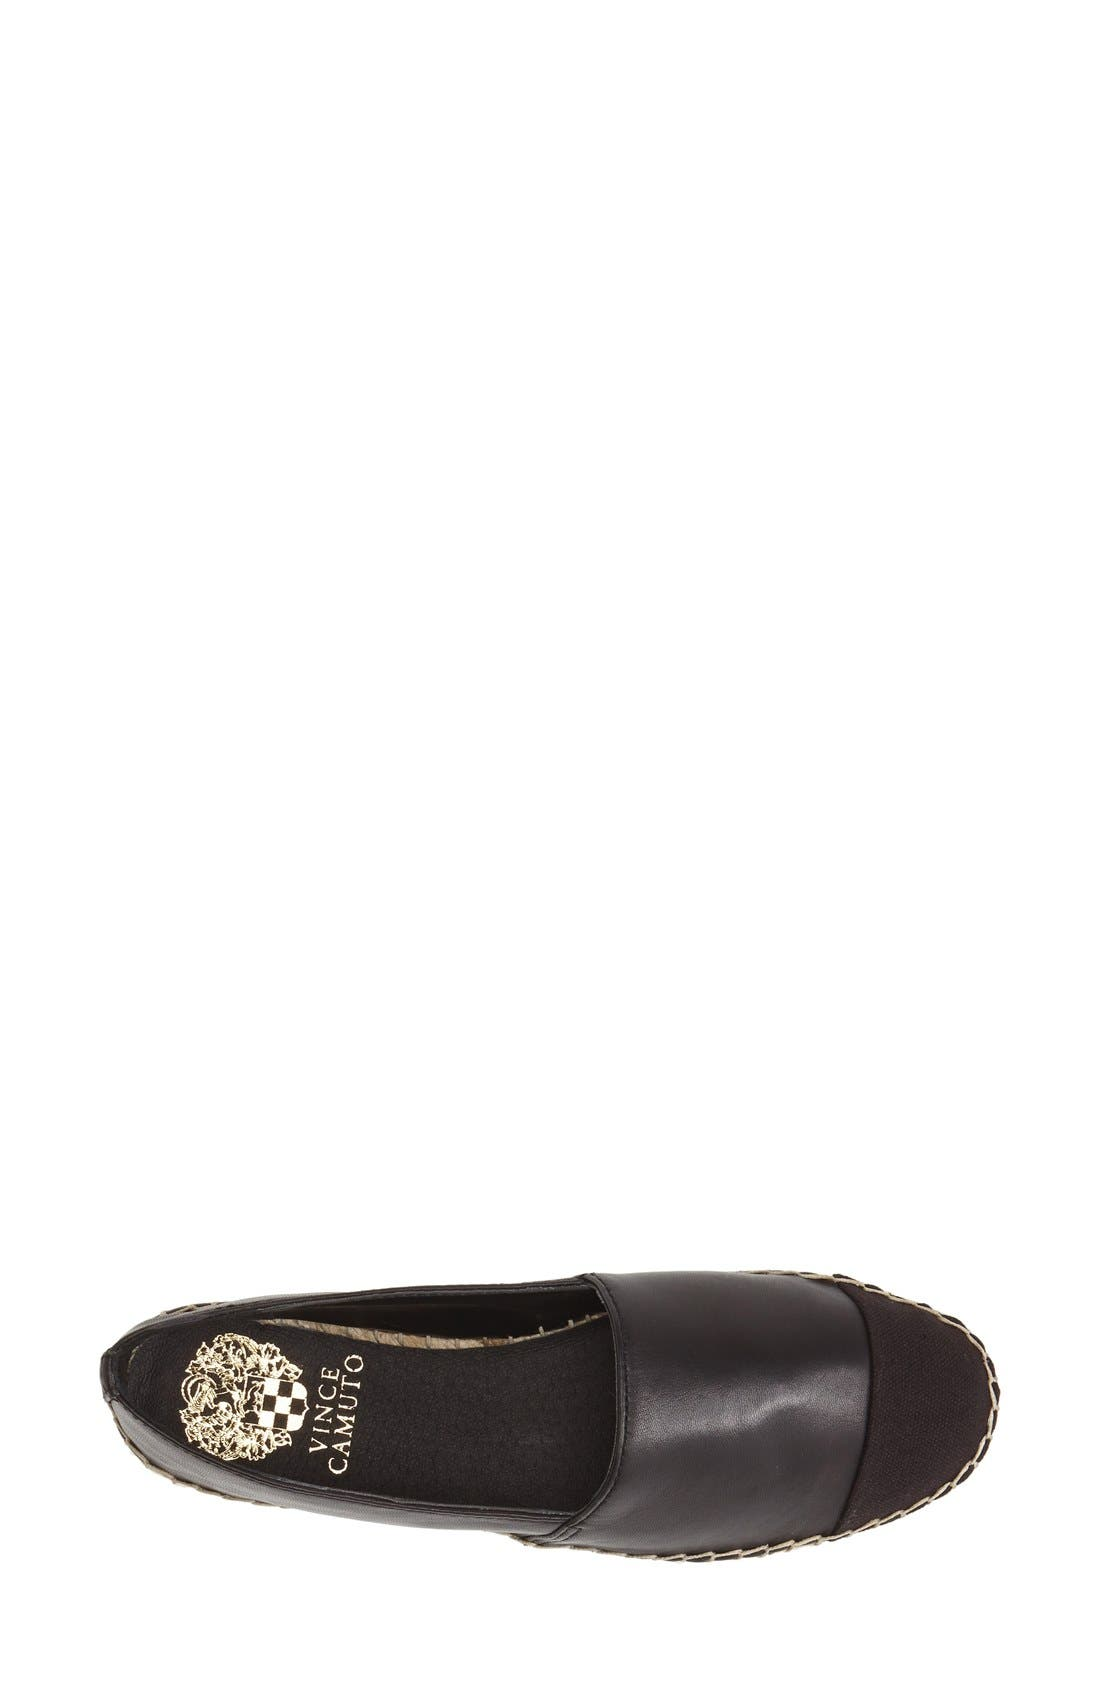 Alternate Image 3  - Vince Camuto 'Dally' Leather Espadrille Flat (Women)